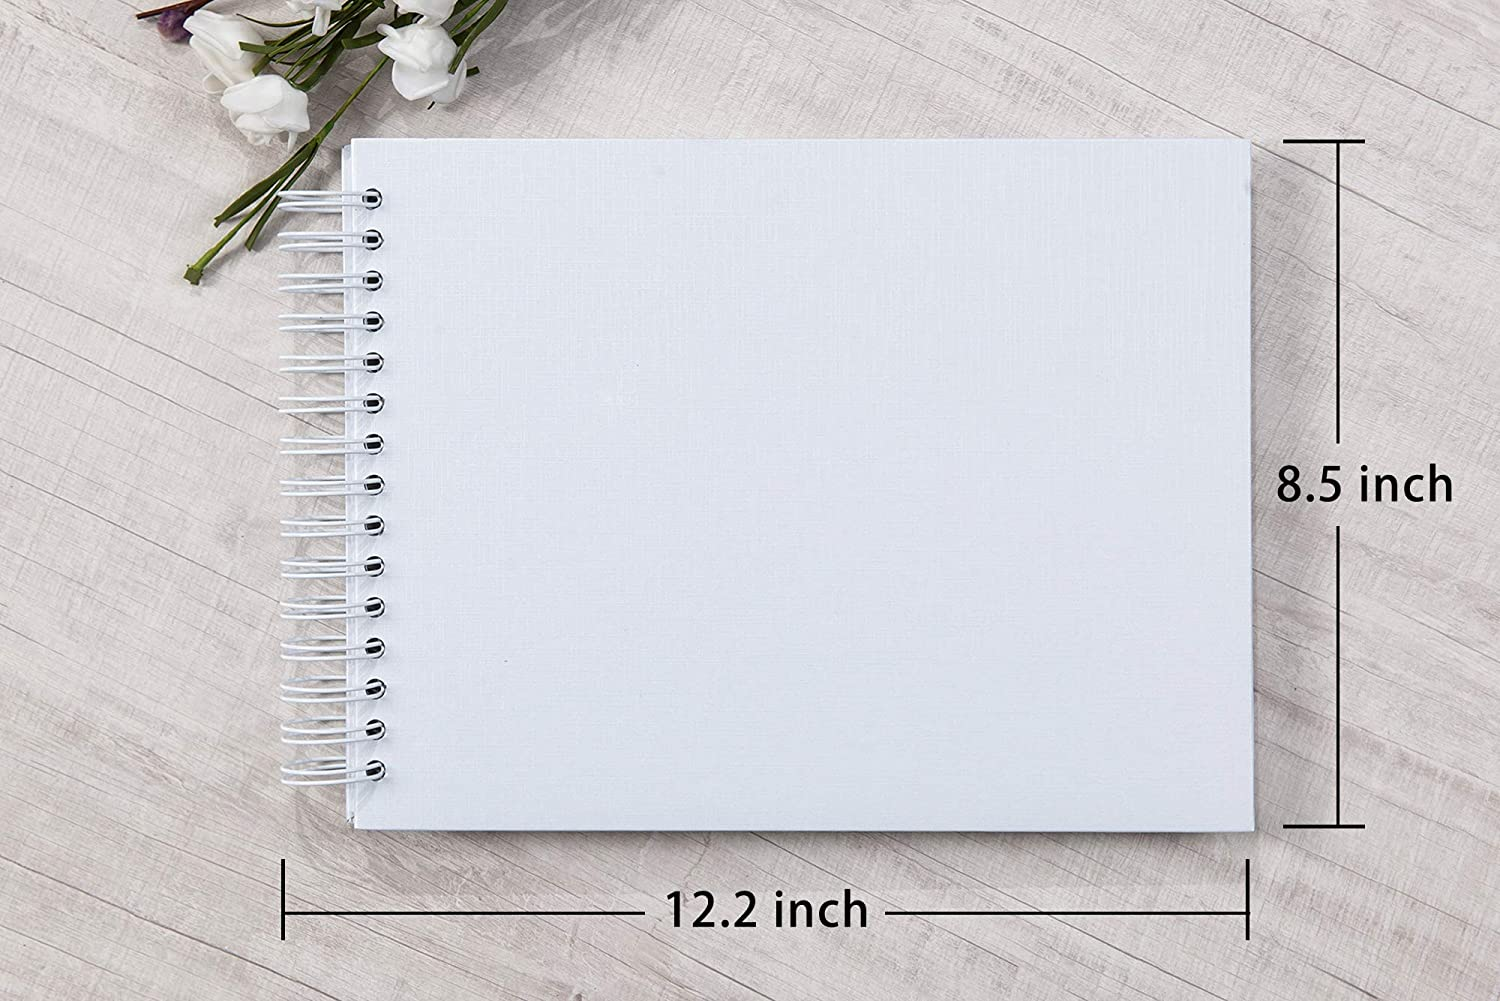 12.2 x 8.5 Inch Hardcover Kraft Blank Brown Page DIY Scrapbook Photo Album Brown 40 Sheets 80 Pages Wedding Anniversary Family Small Scrapbook Photo Album